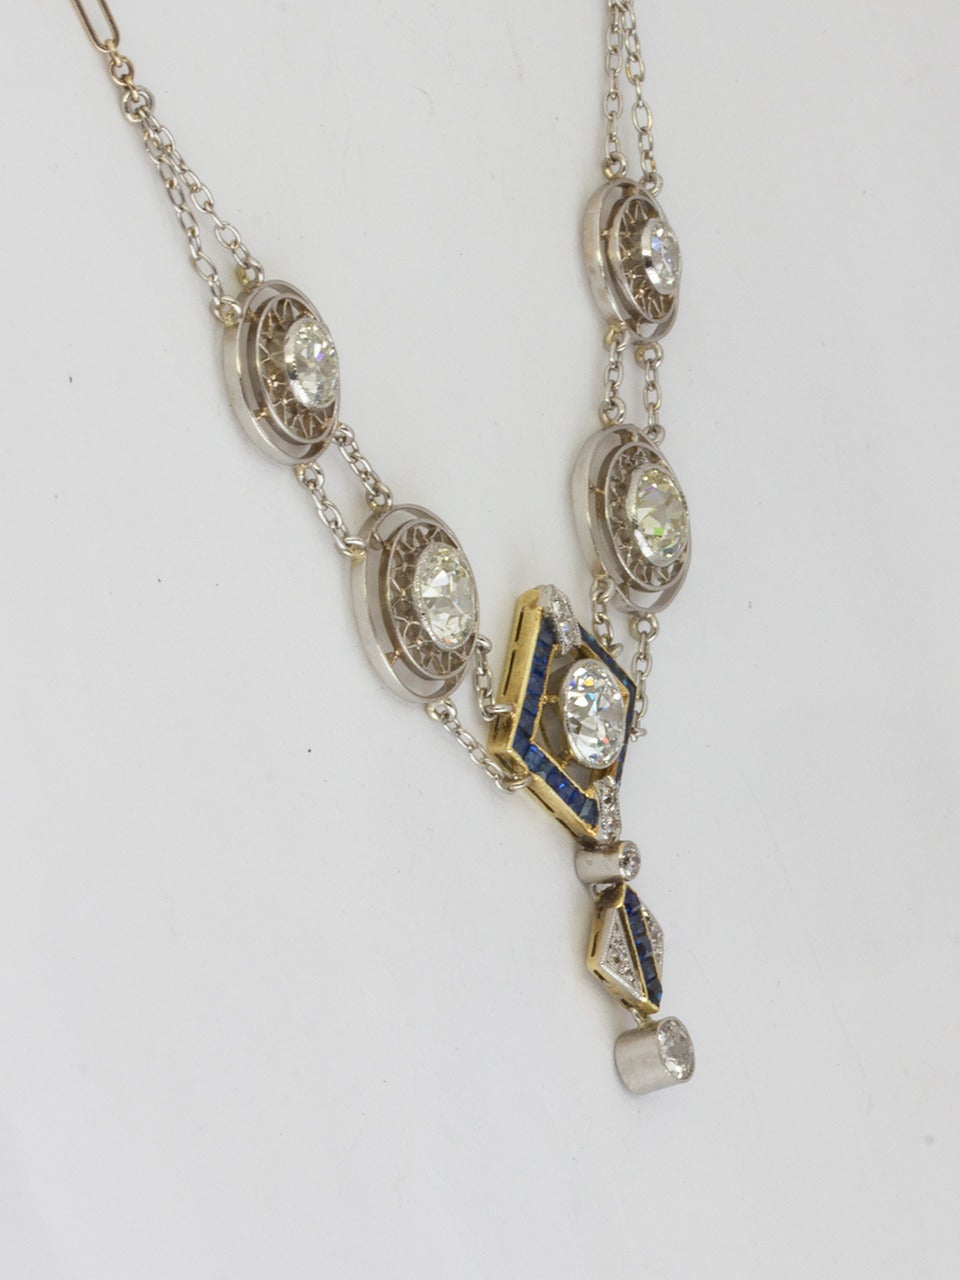 1920s Art Deco 3.50 Carat Platinum 18 Karat and Diamond Lavalier Necklace In Excellent Condition For Sale In West Hollywood, CA